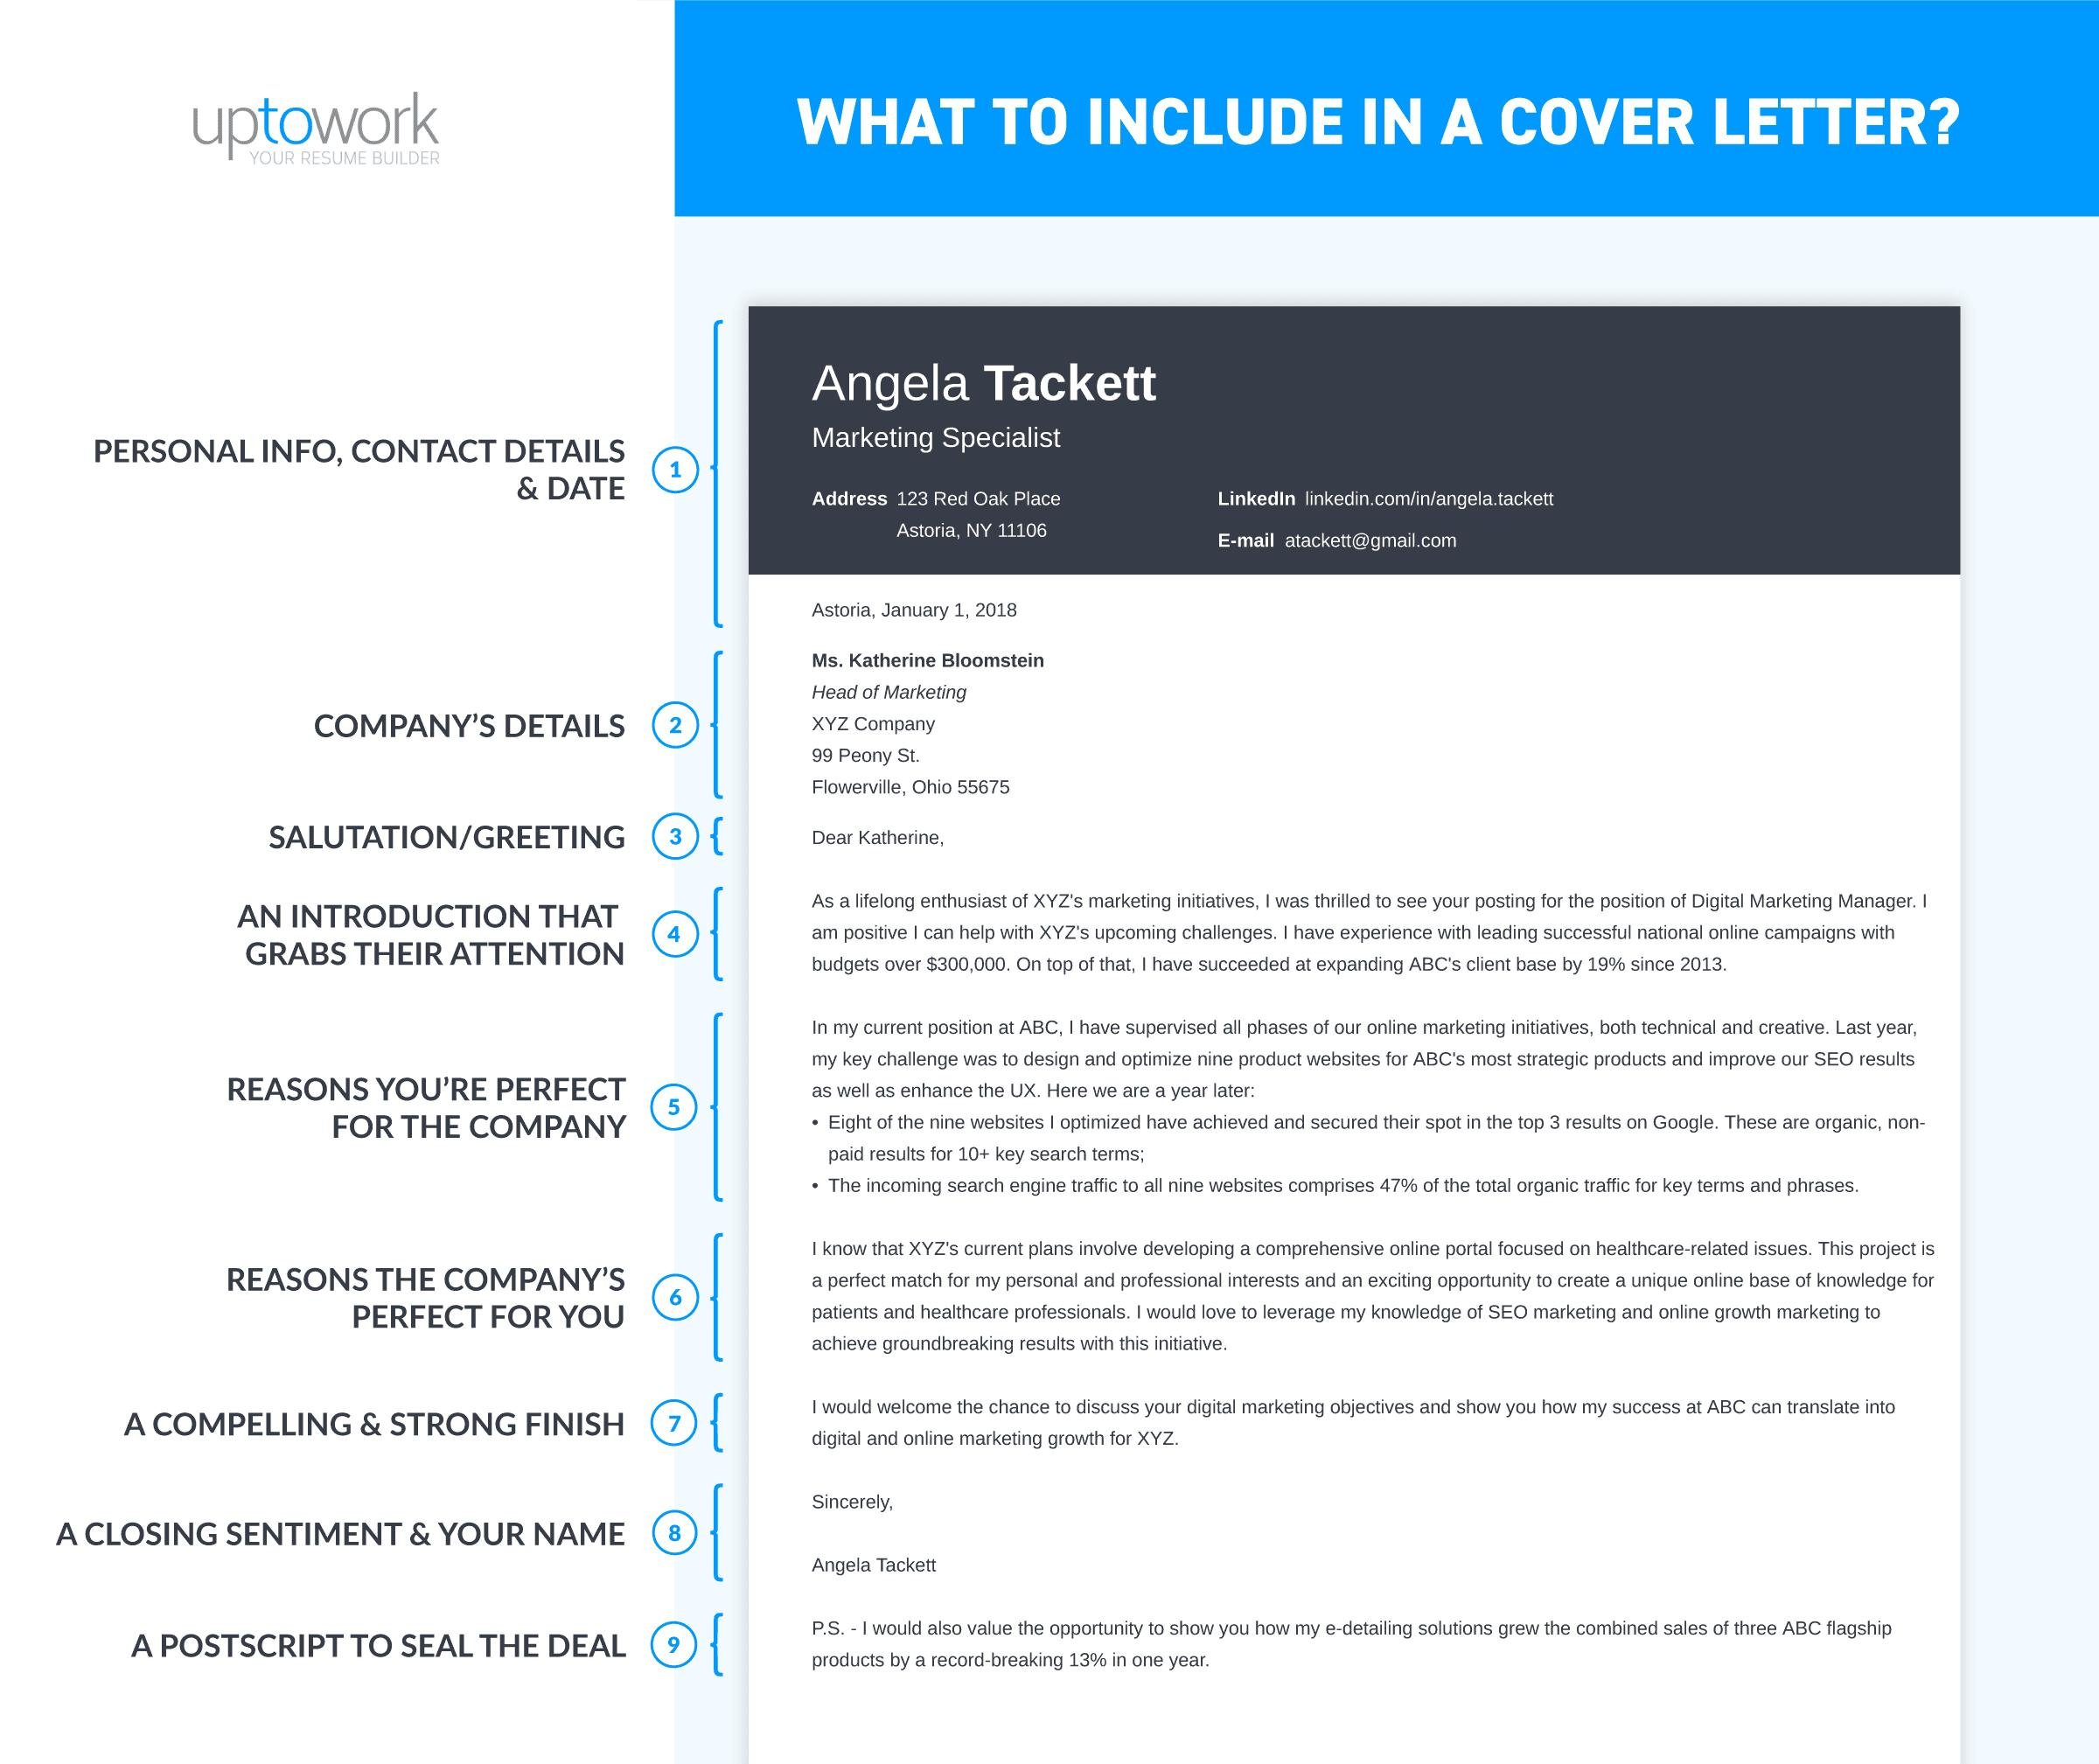 how to complete a cover letter for a resume - what to include in a cover letter 15 examples a